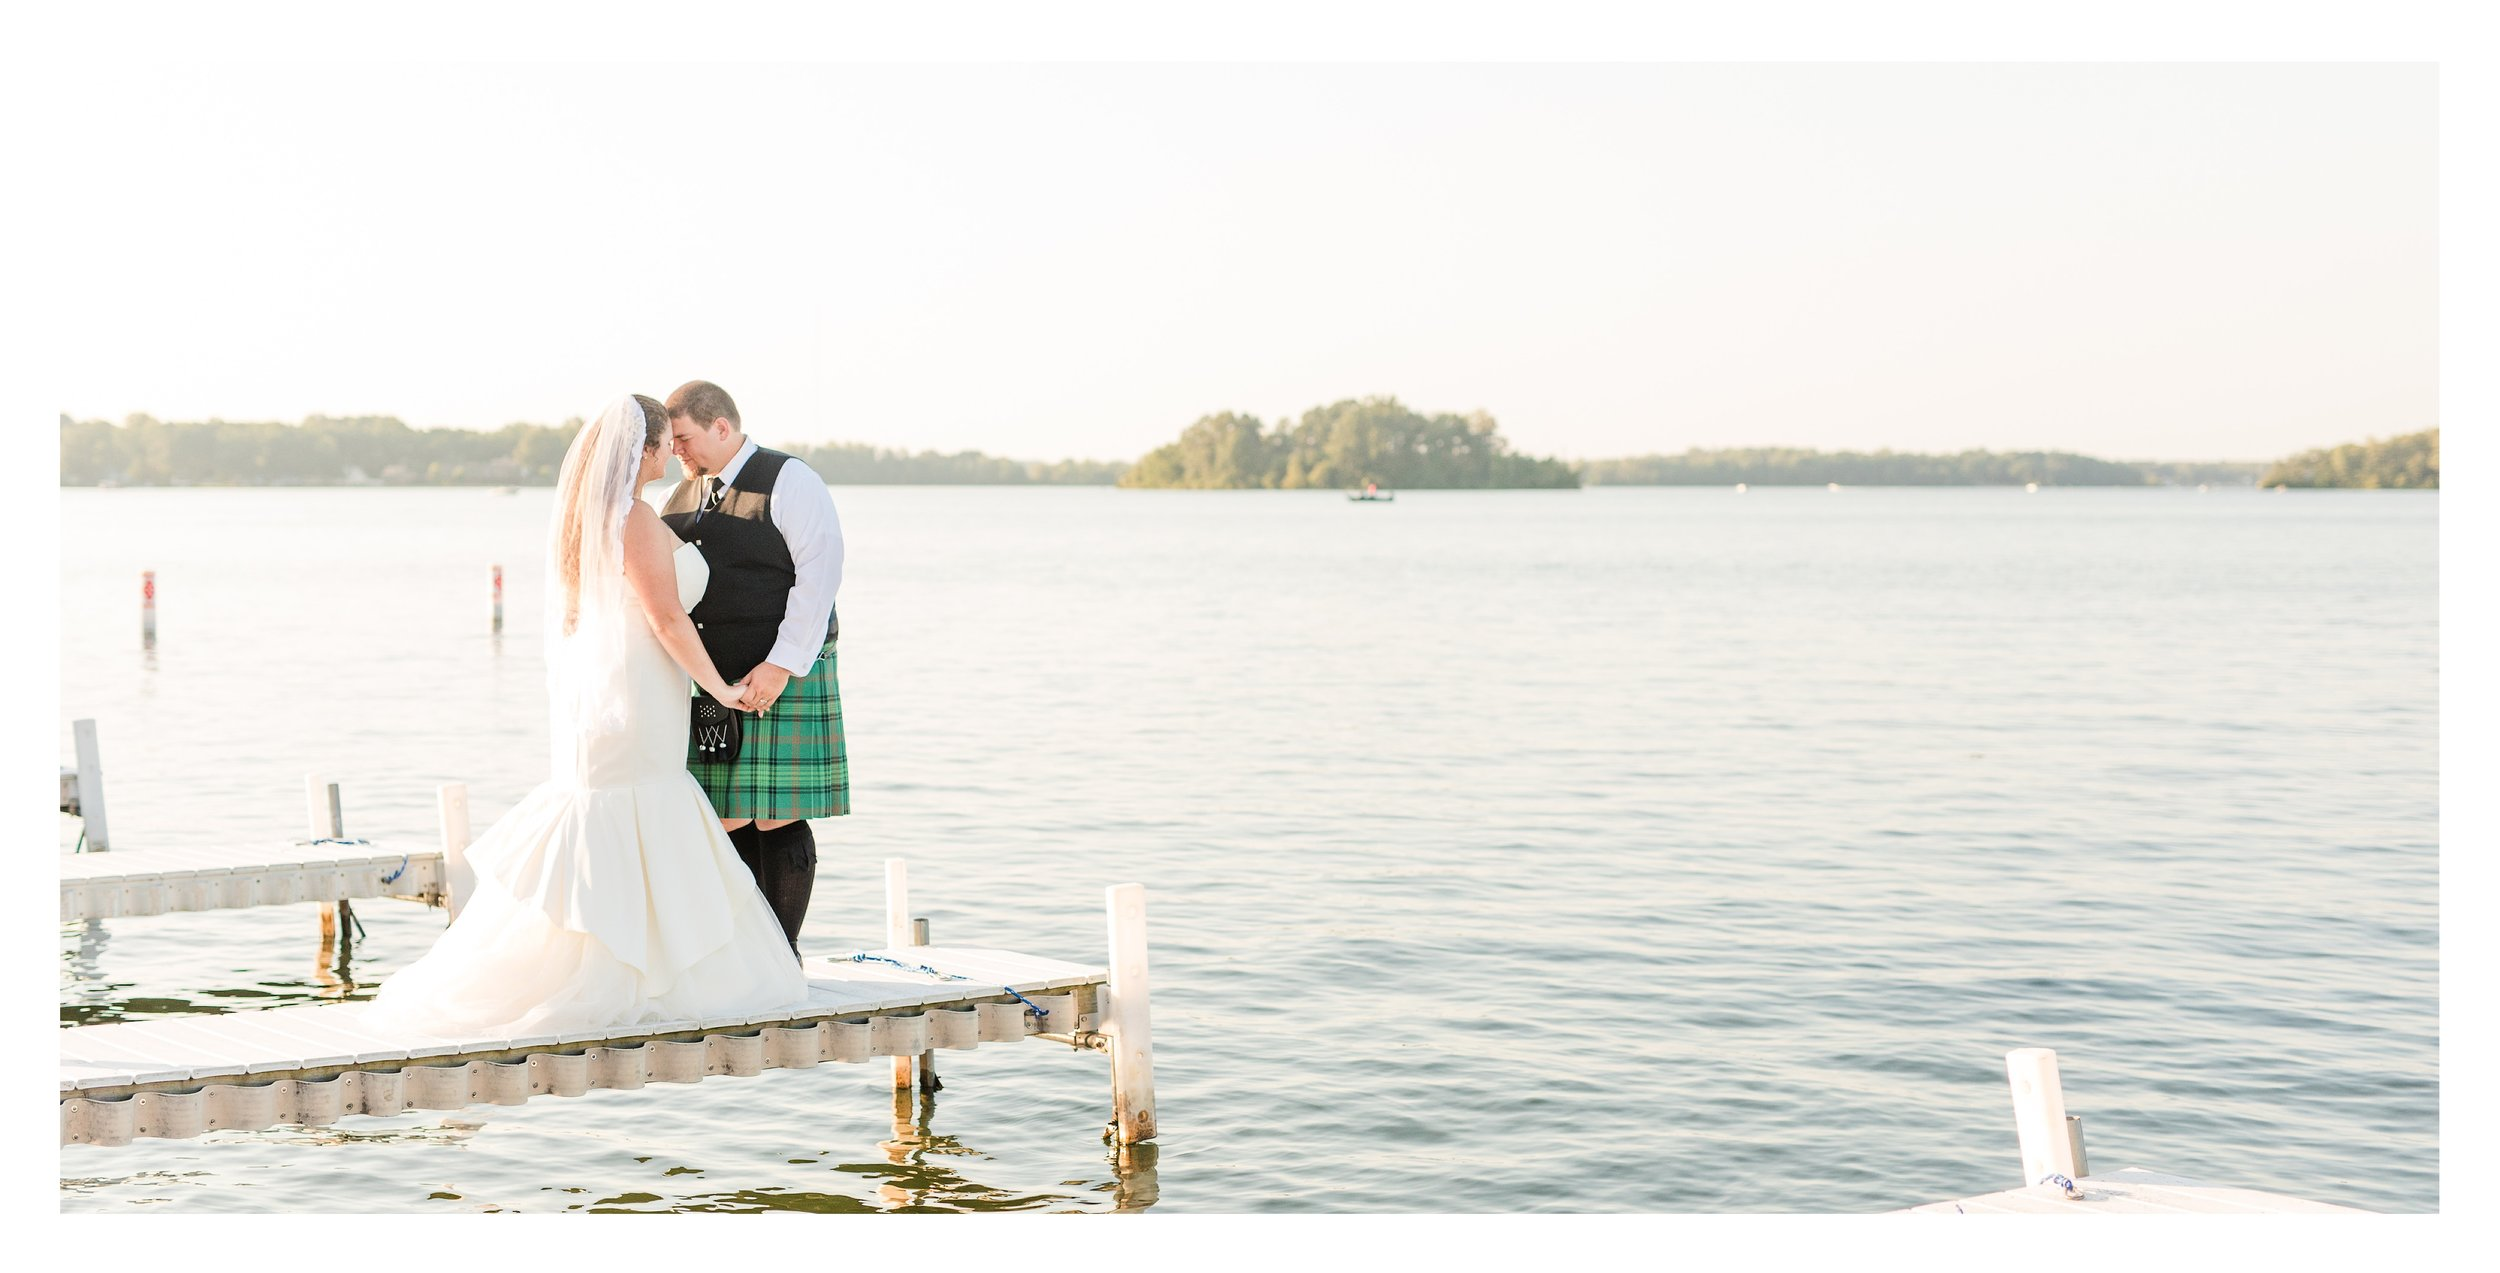 Our_Wedding_Album_12x12_-_30_pages_32.jpg